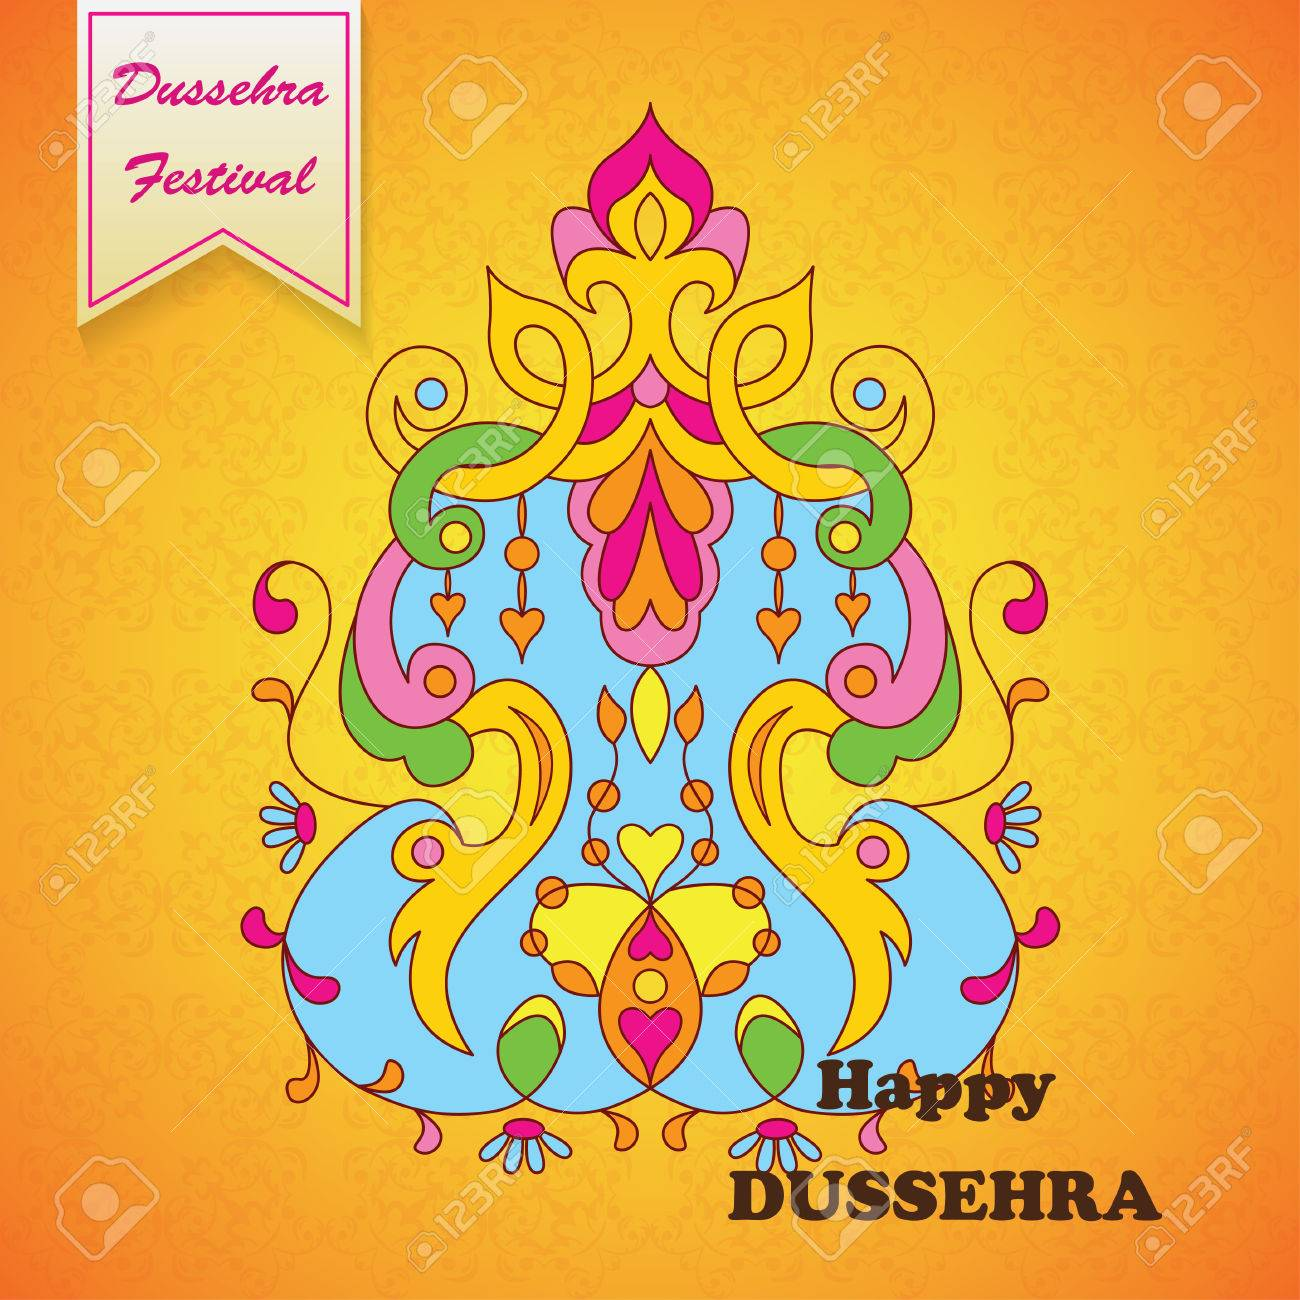 Dussehra festival backgroundeeting card for dussehra celebration dussehra festival backgroundeeting card for dussehra celebration in india stock vector 63810257 m4hsunfo